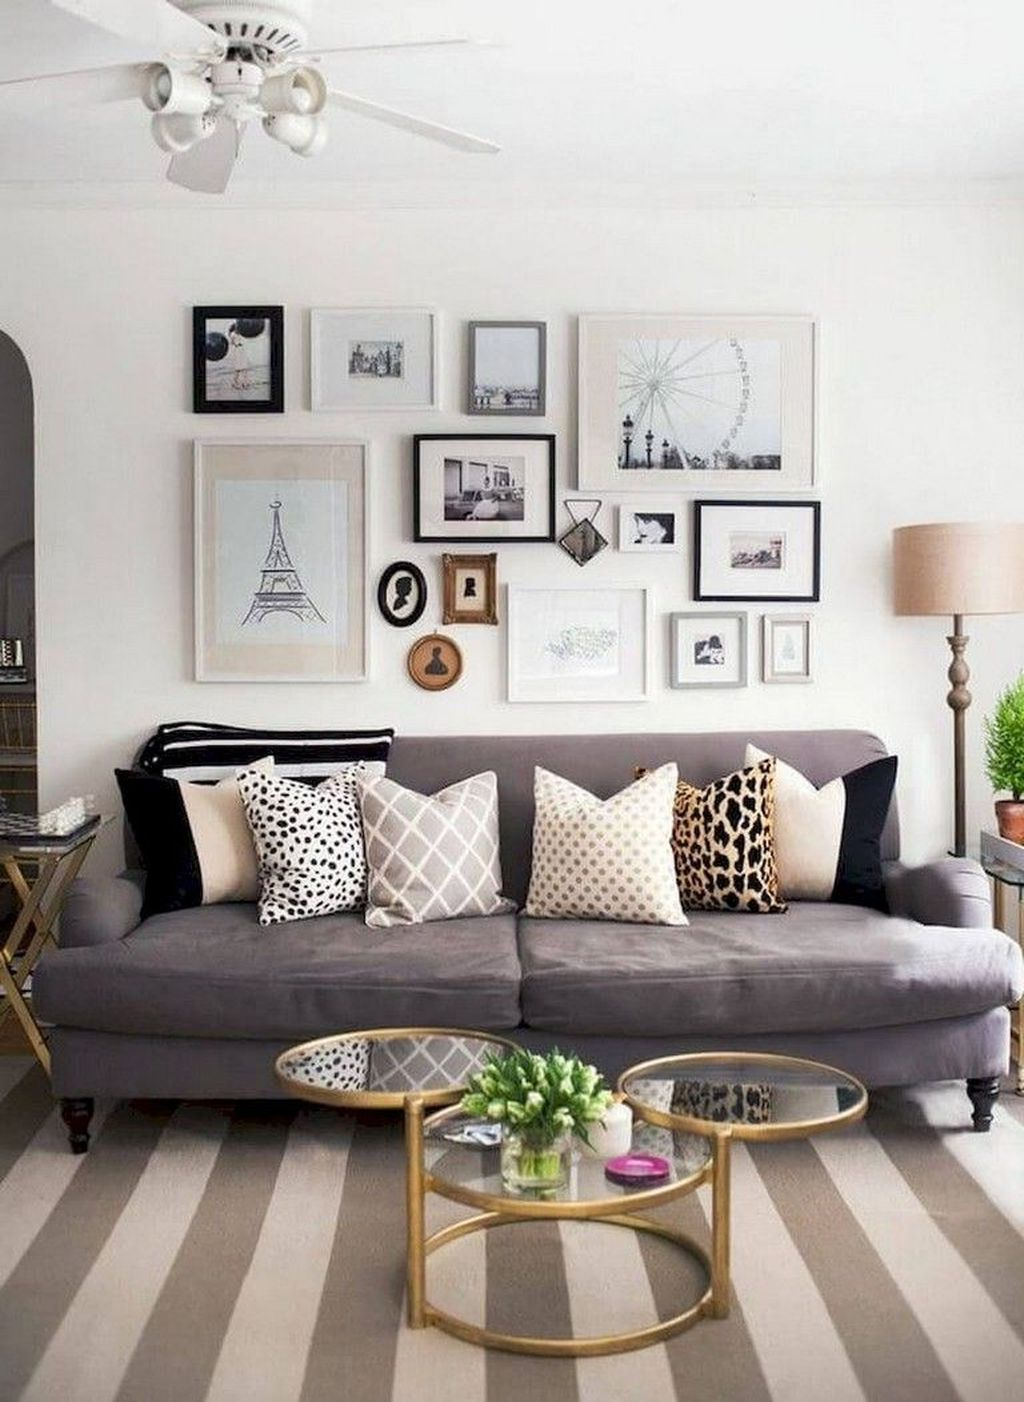 Inspiring Small Apartment Decoration Ideas 12